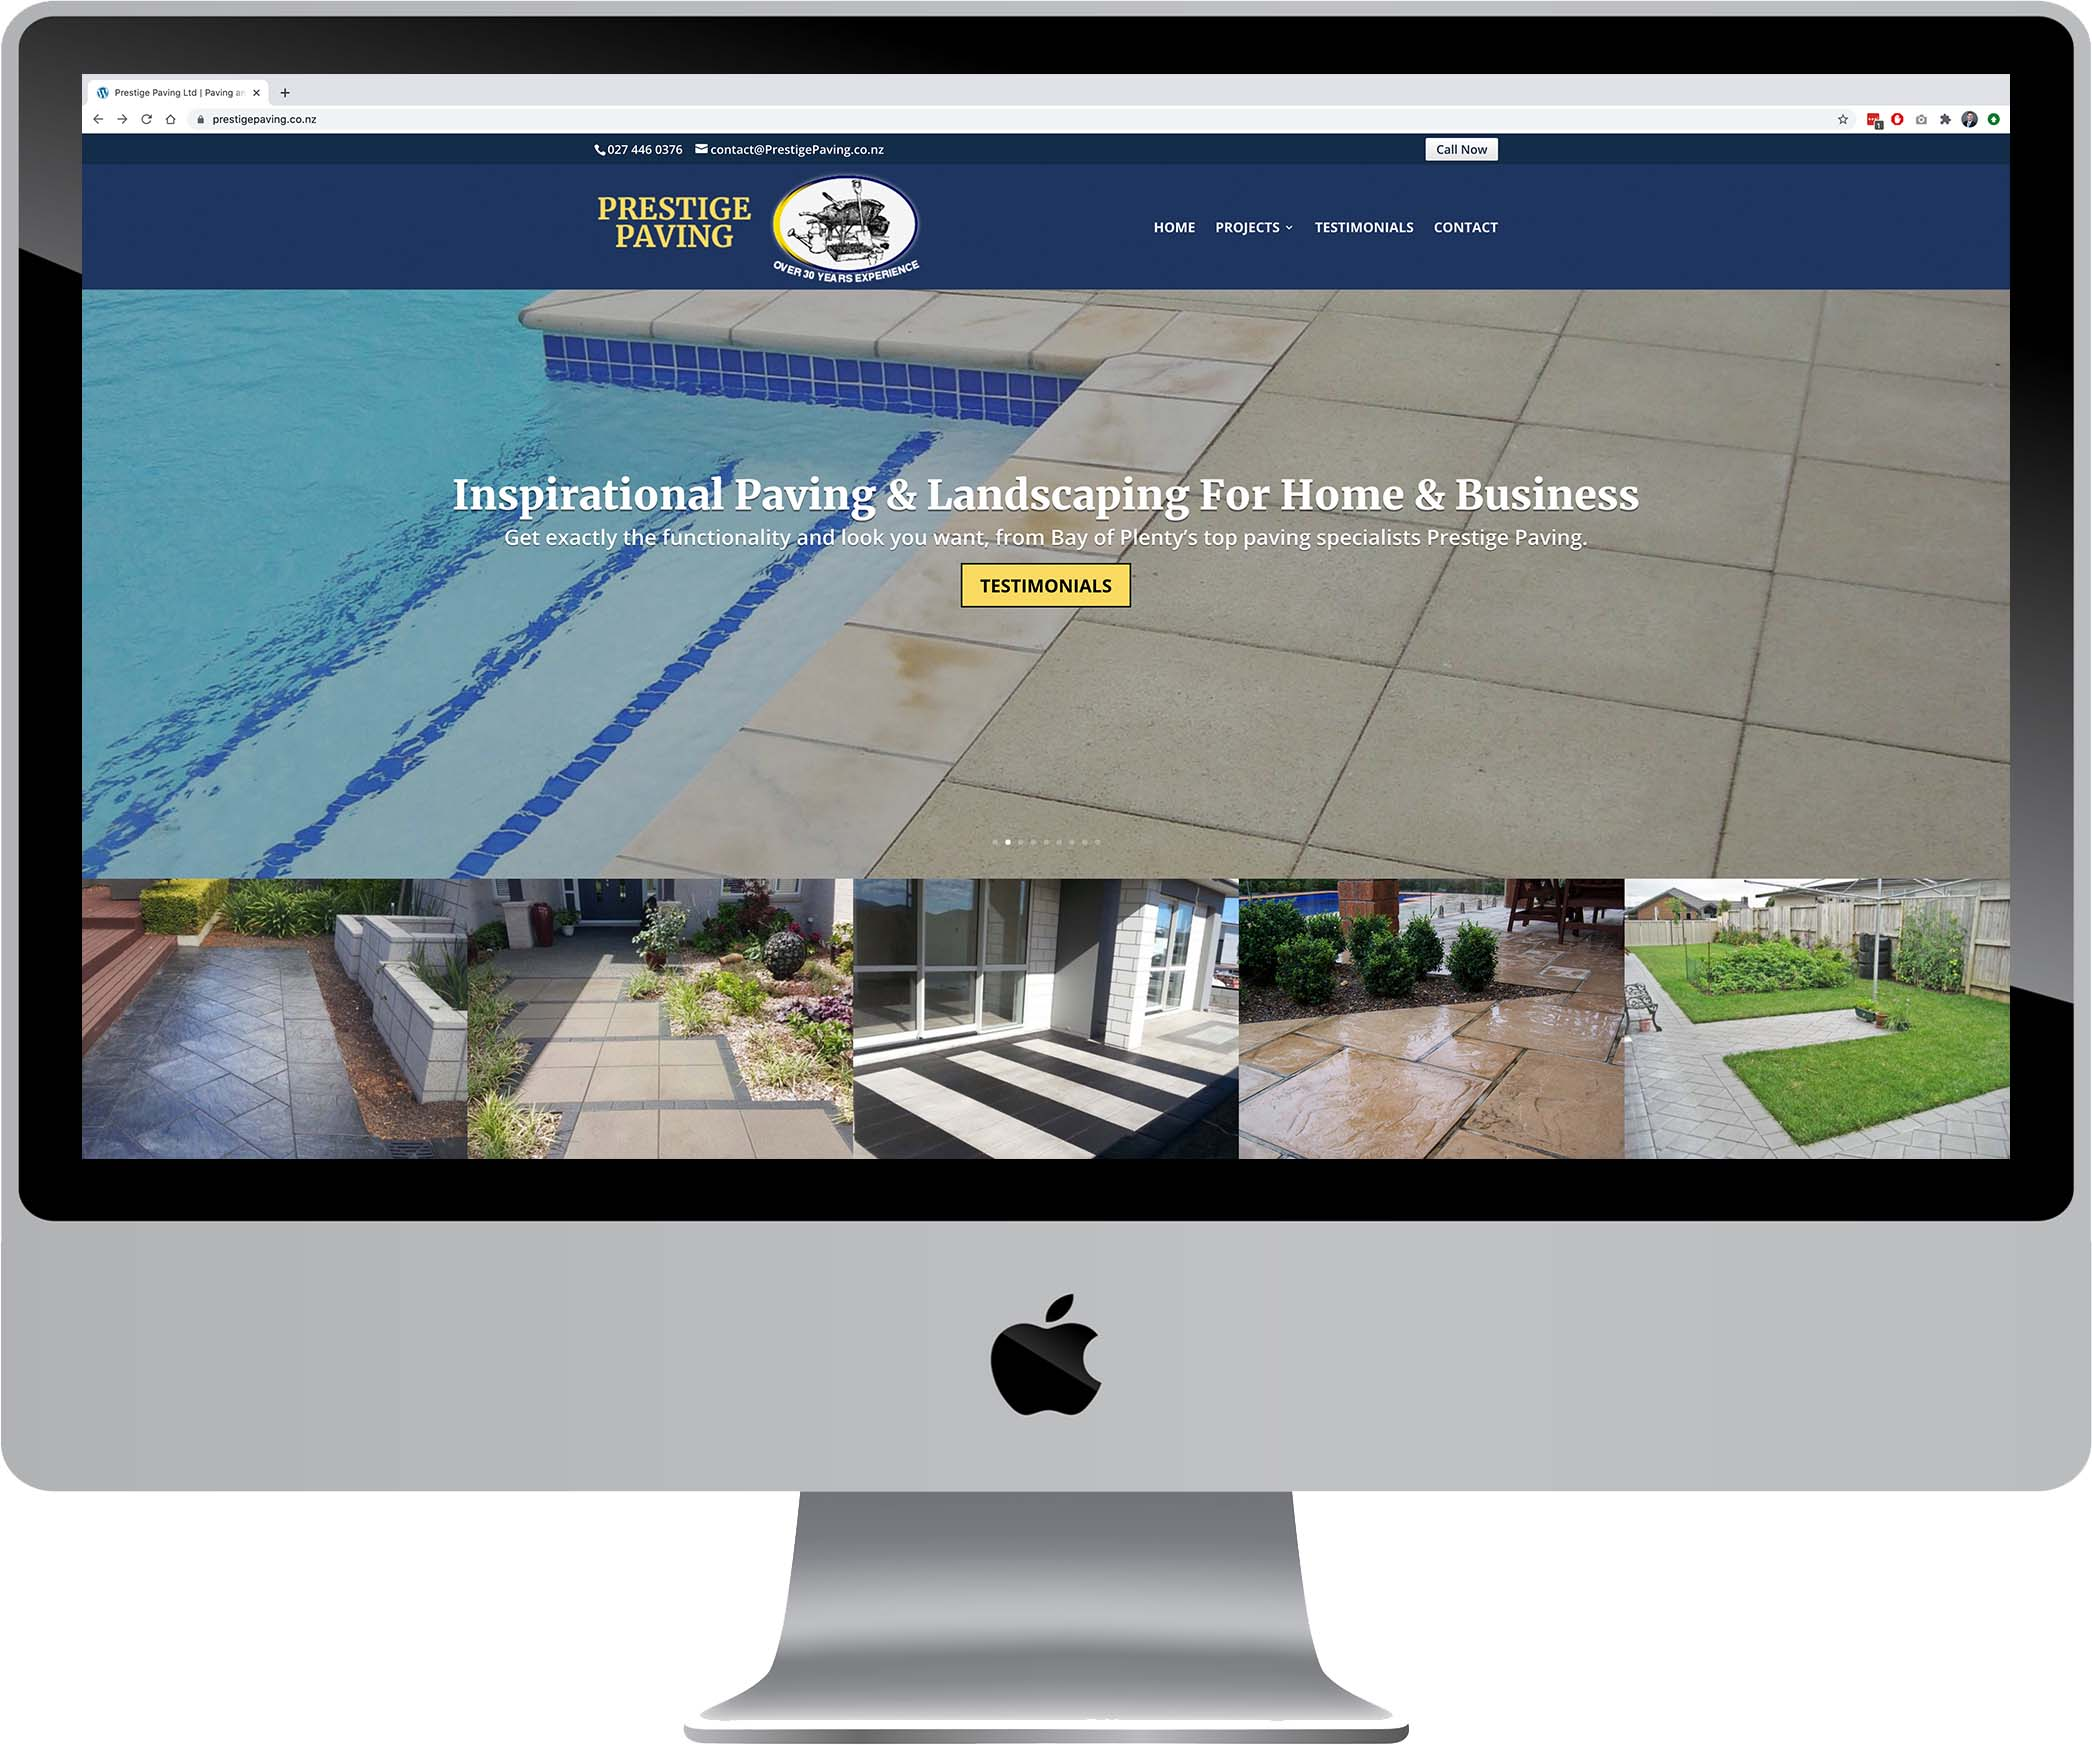 Prestige Paving Website Design